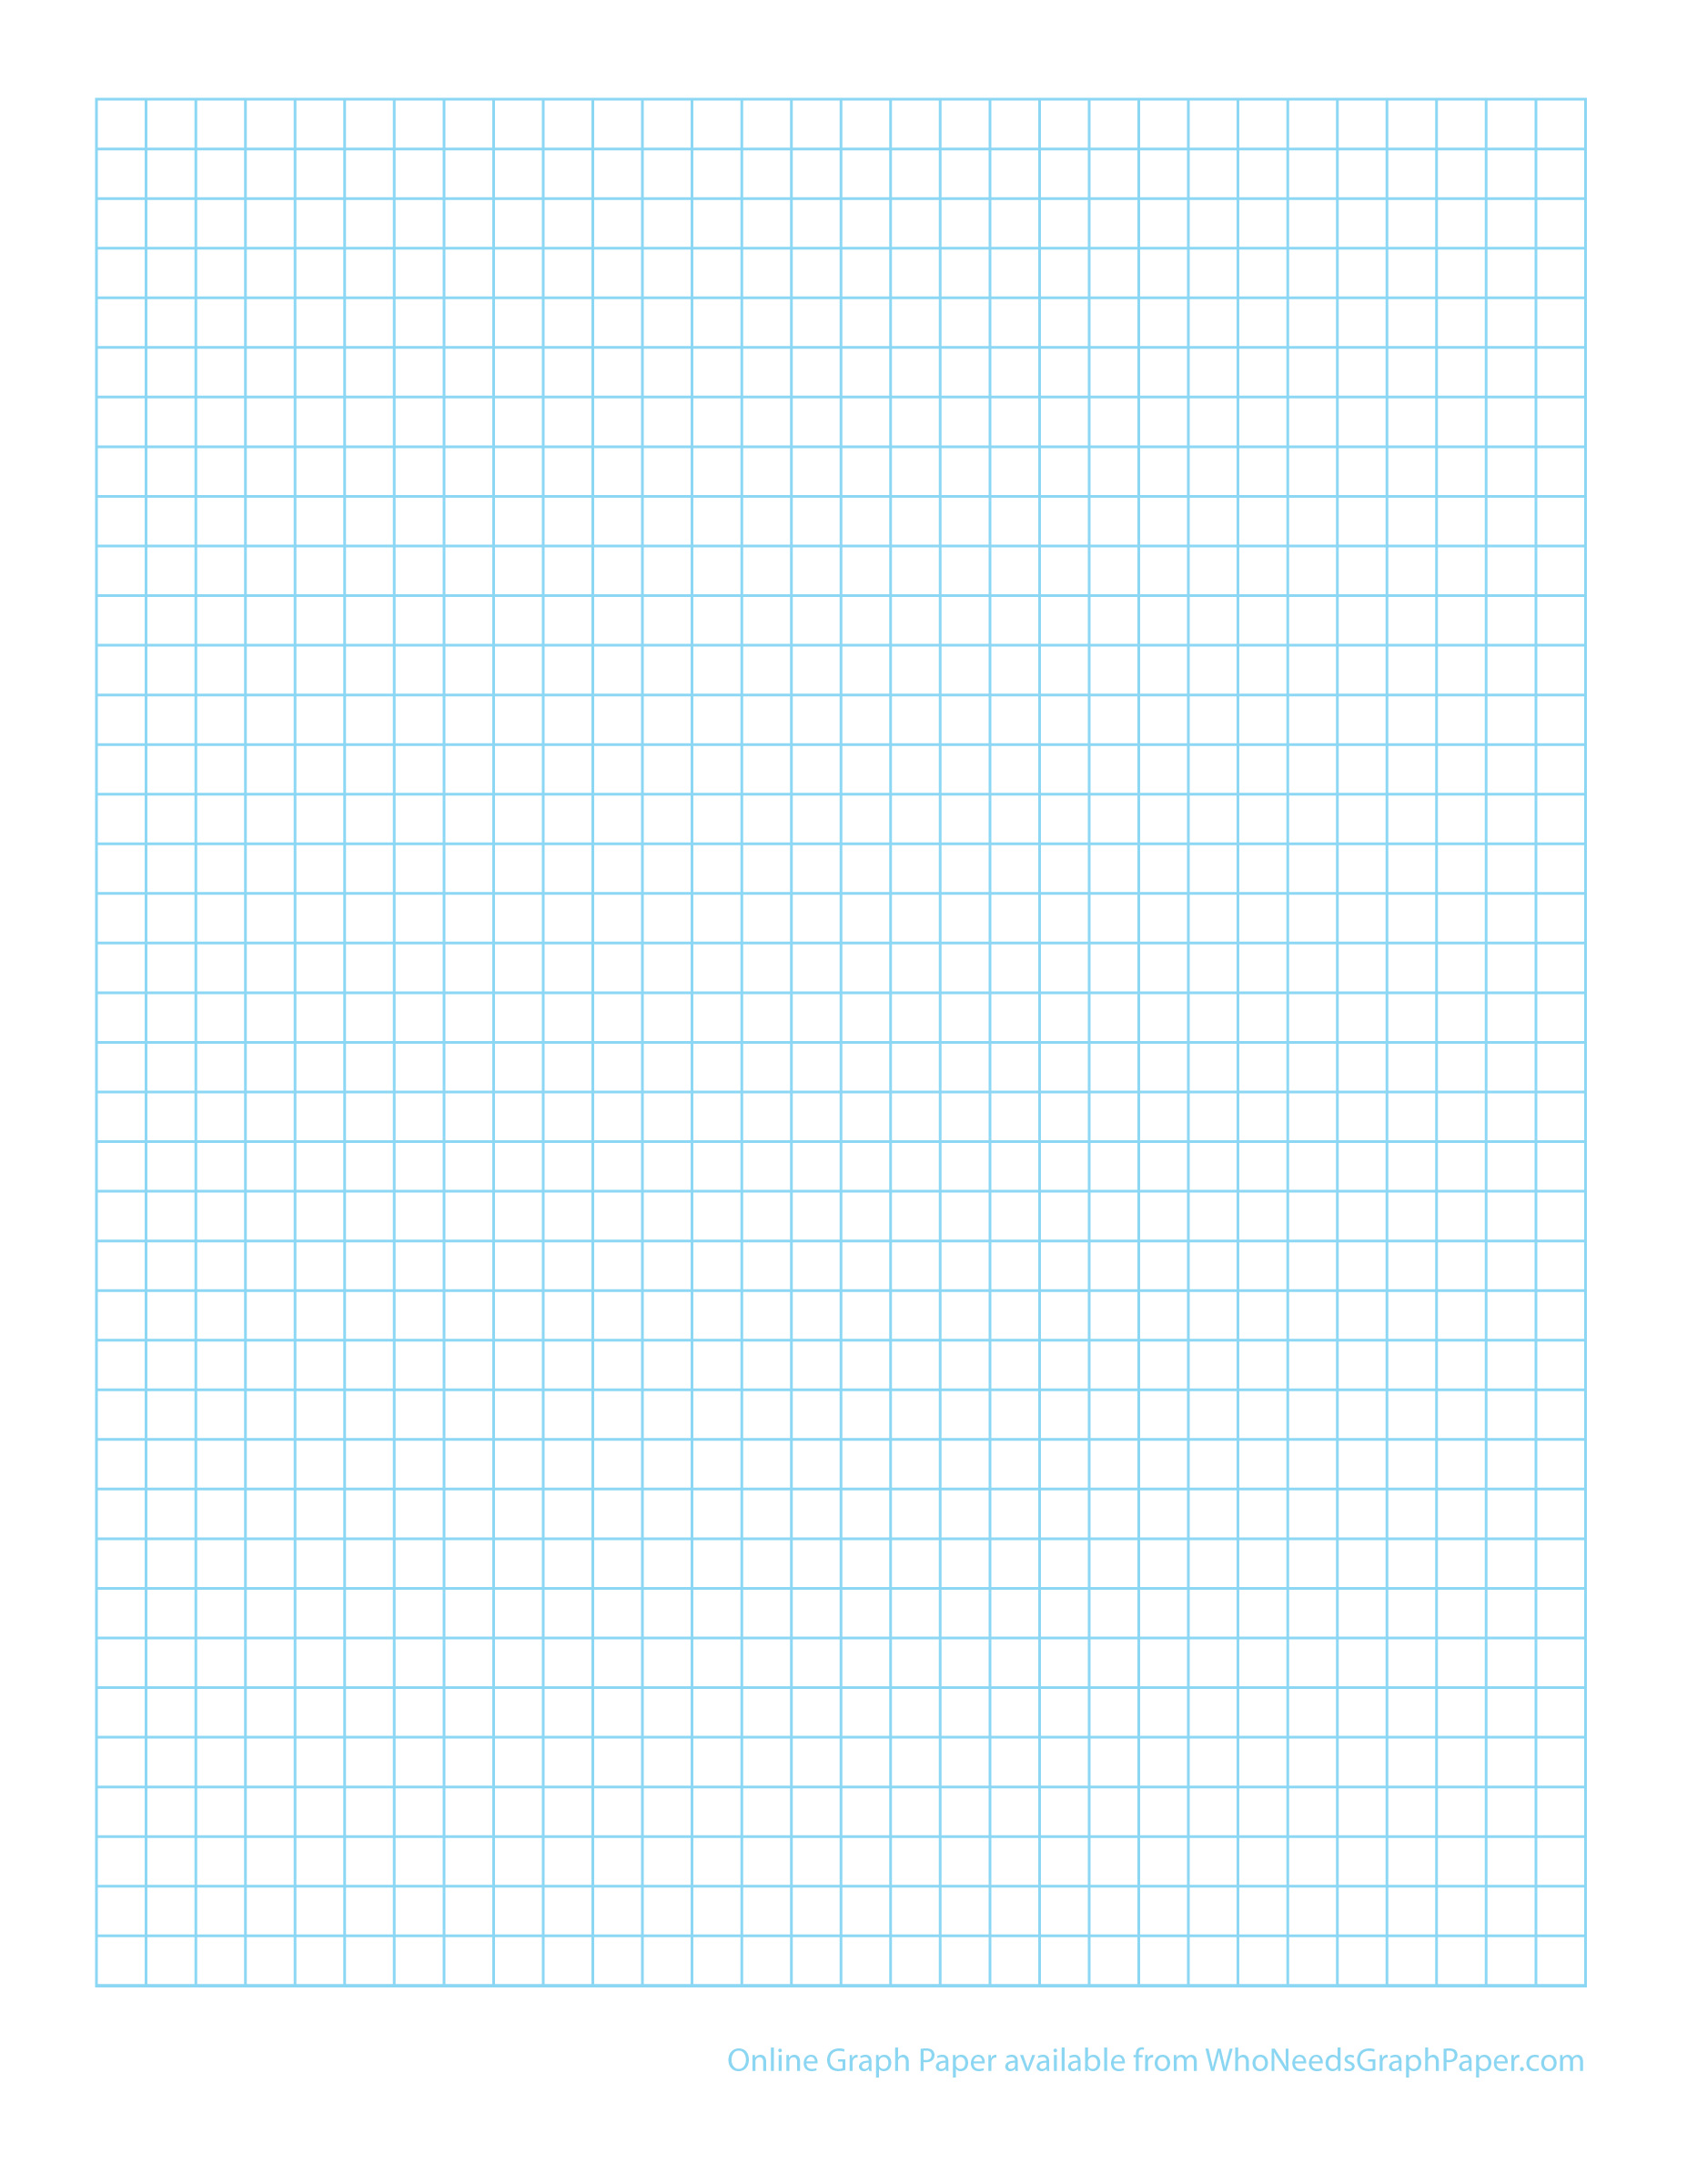 graph paper design online elita aisushi co